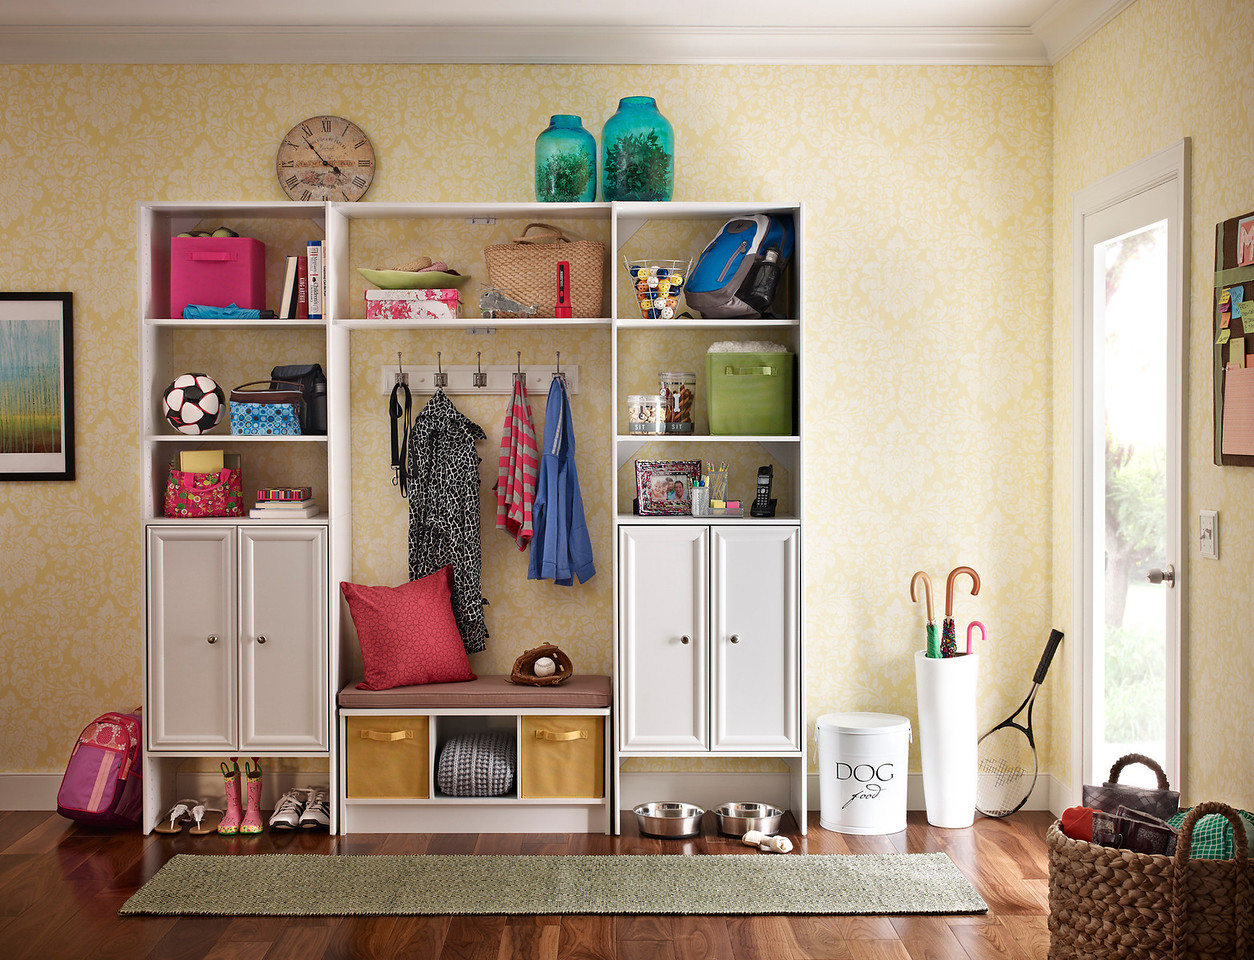 Mudroom storage area created with ClosetMaid DIY Laminate Shelving and a Cubeicals 3-Cube Storage Bench in White